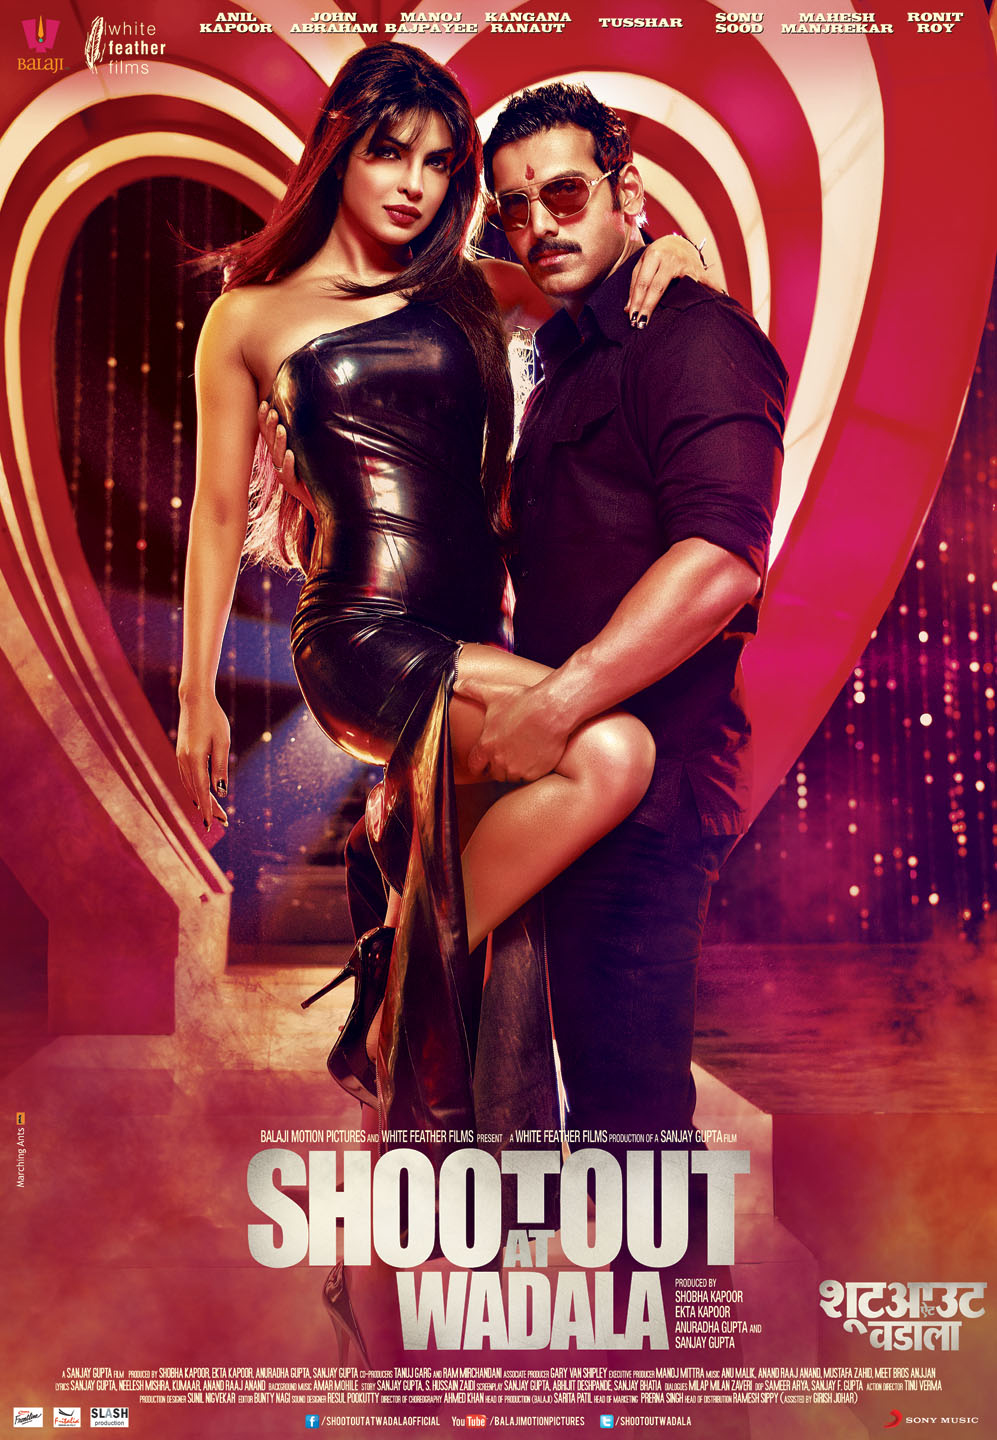 Shootout At Wadala - Movie Poster #8 (Original)